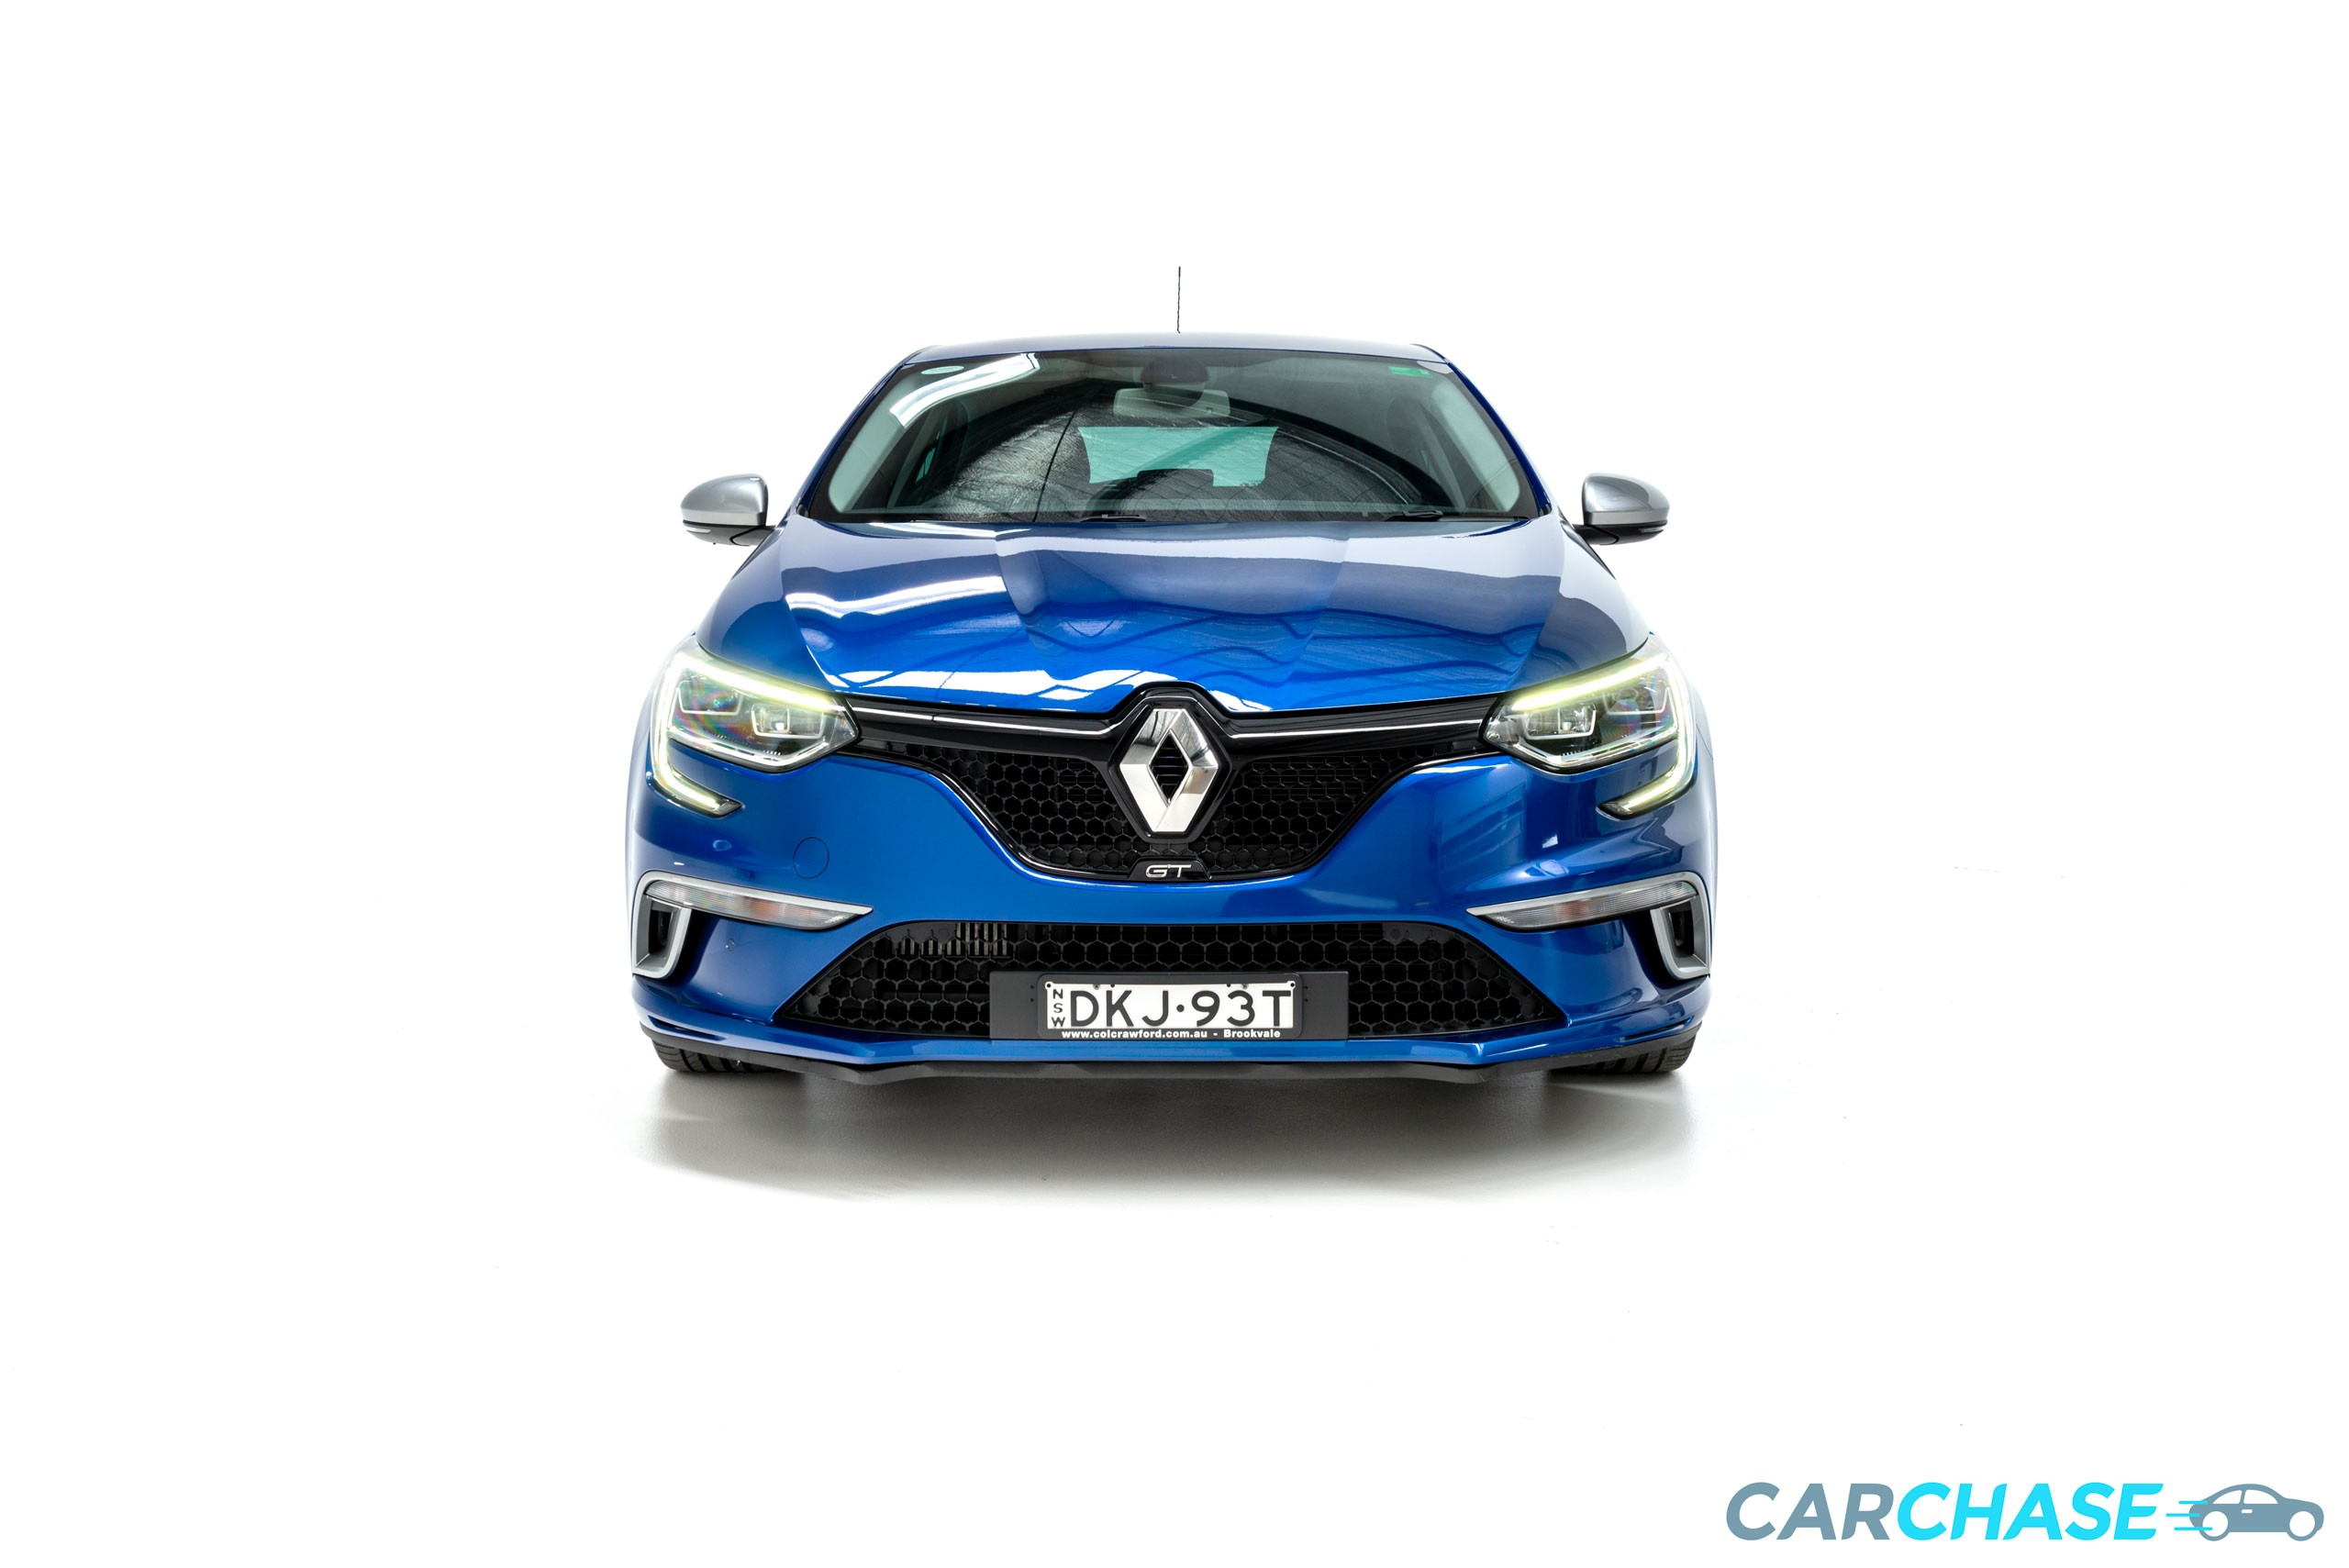 Image of front profile of 2016 Renault Megane GT